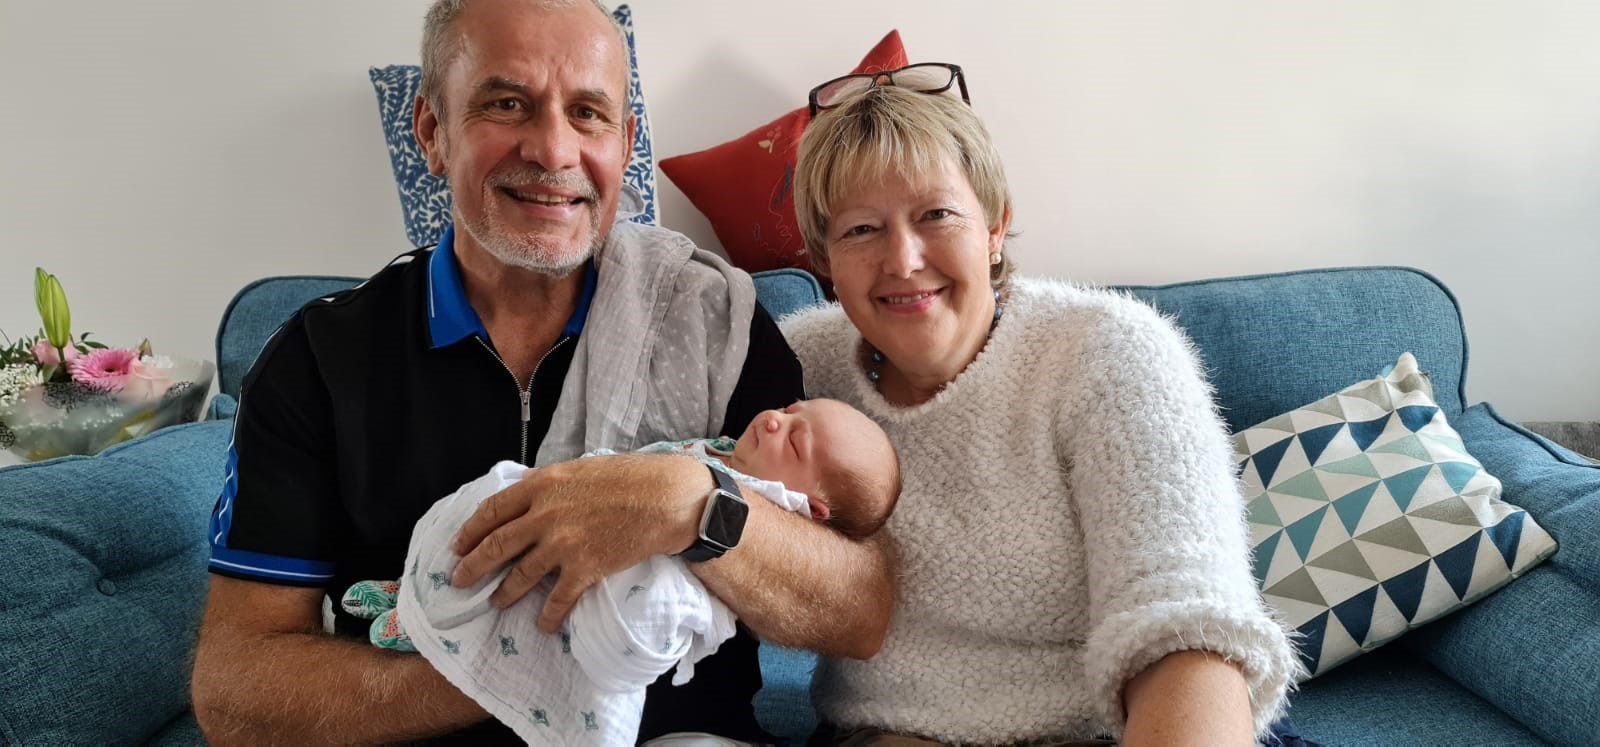 Proud grandparents Siobhan and Keith with their granddaughter